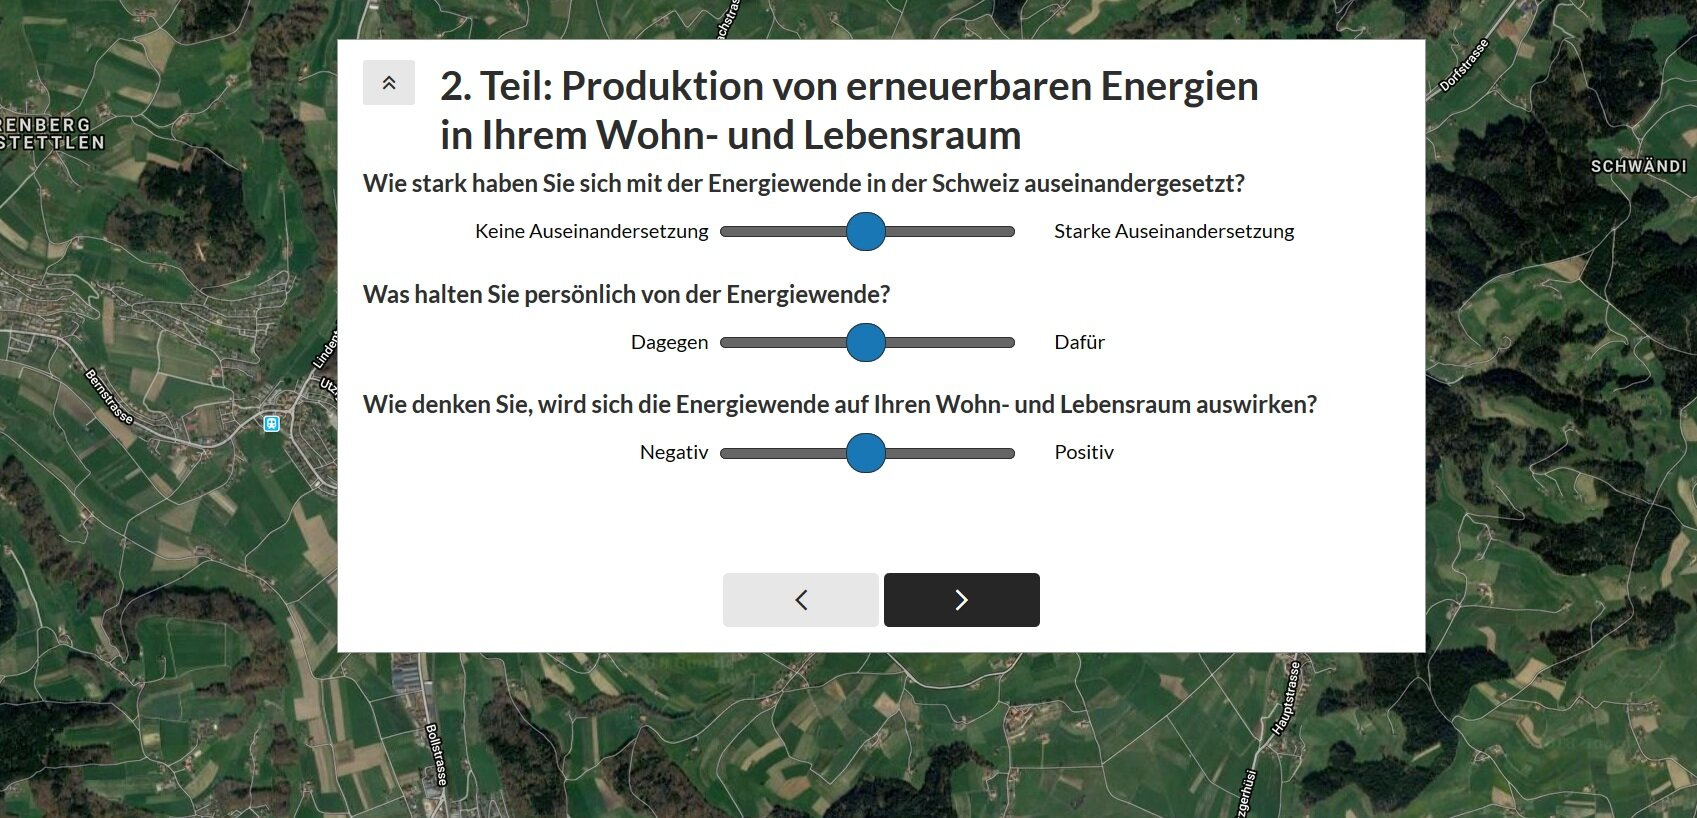 People could indicate how positively or negatively they felt about renewable energies in Switzerland.